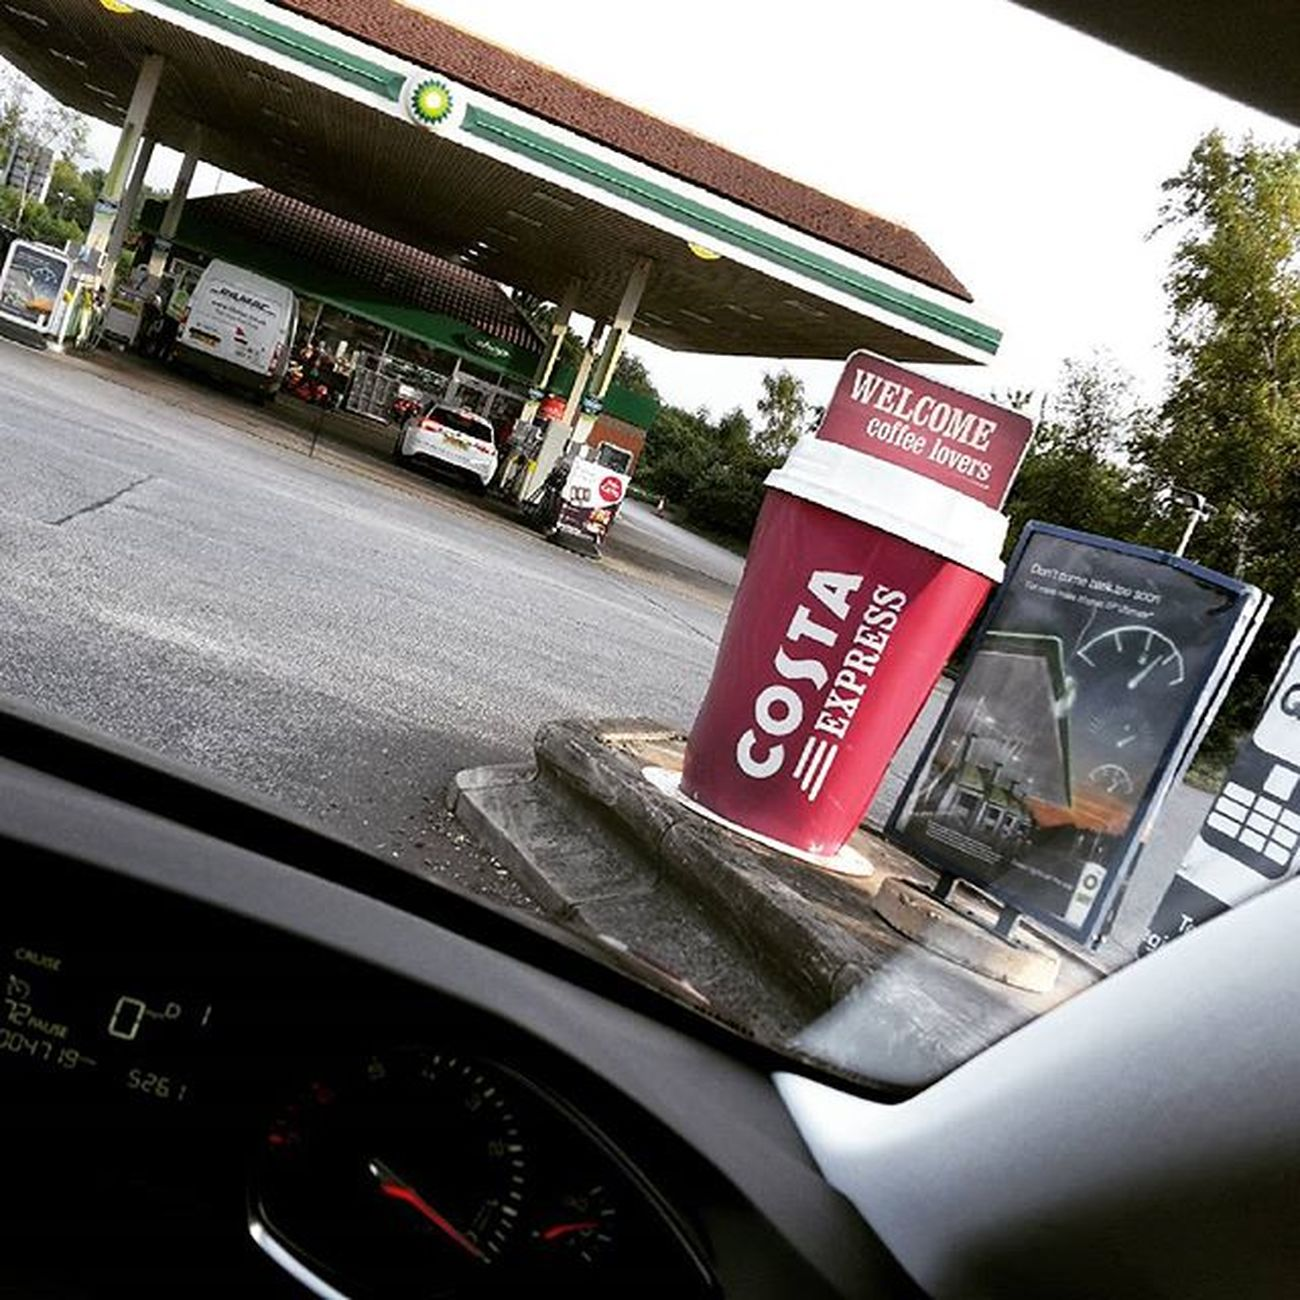 Why am I thinking of you, seeing that entrance of the petrol station? ;-) @elenamazur